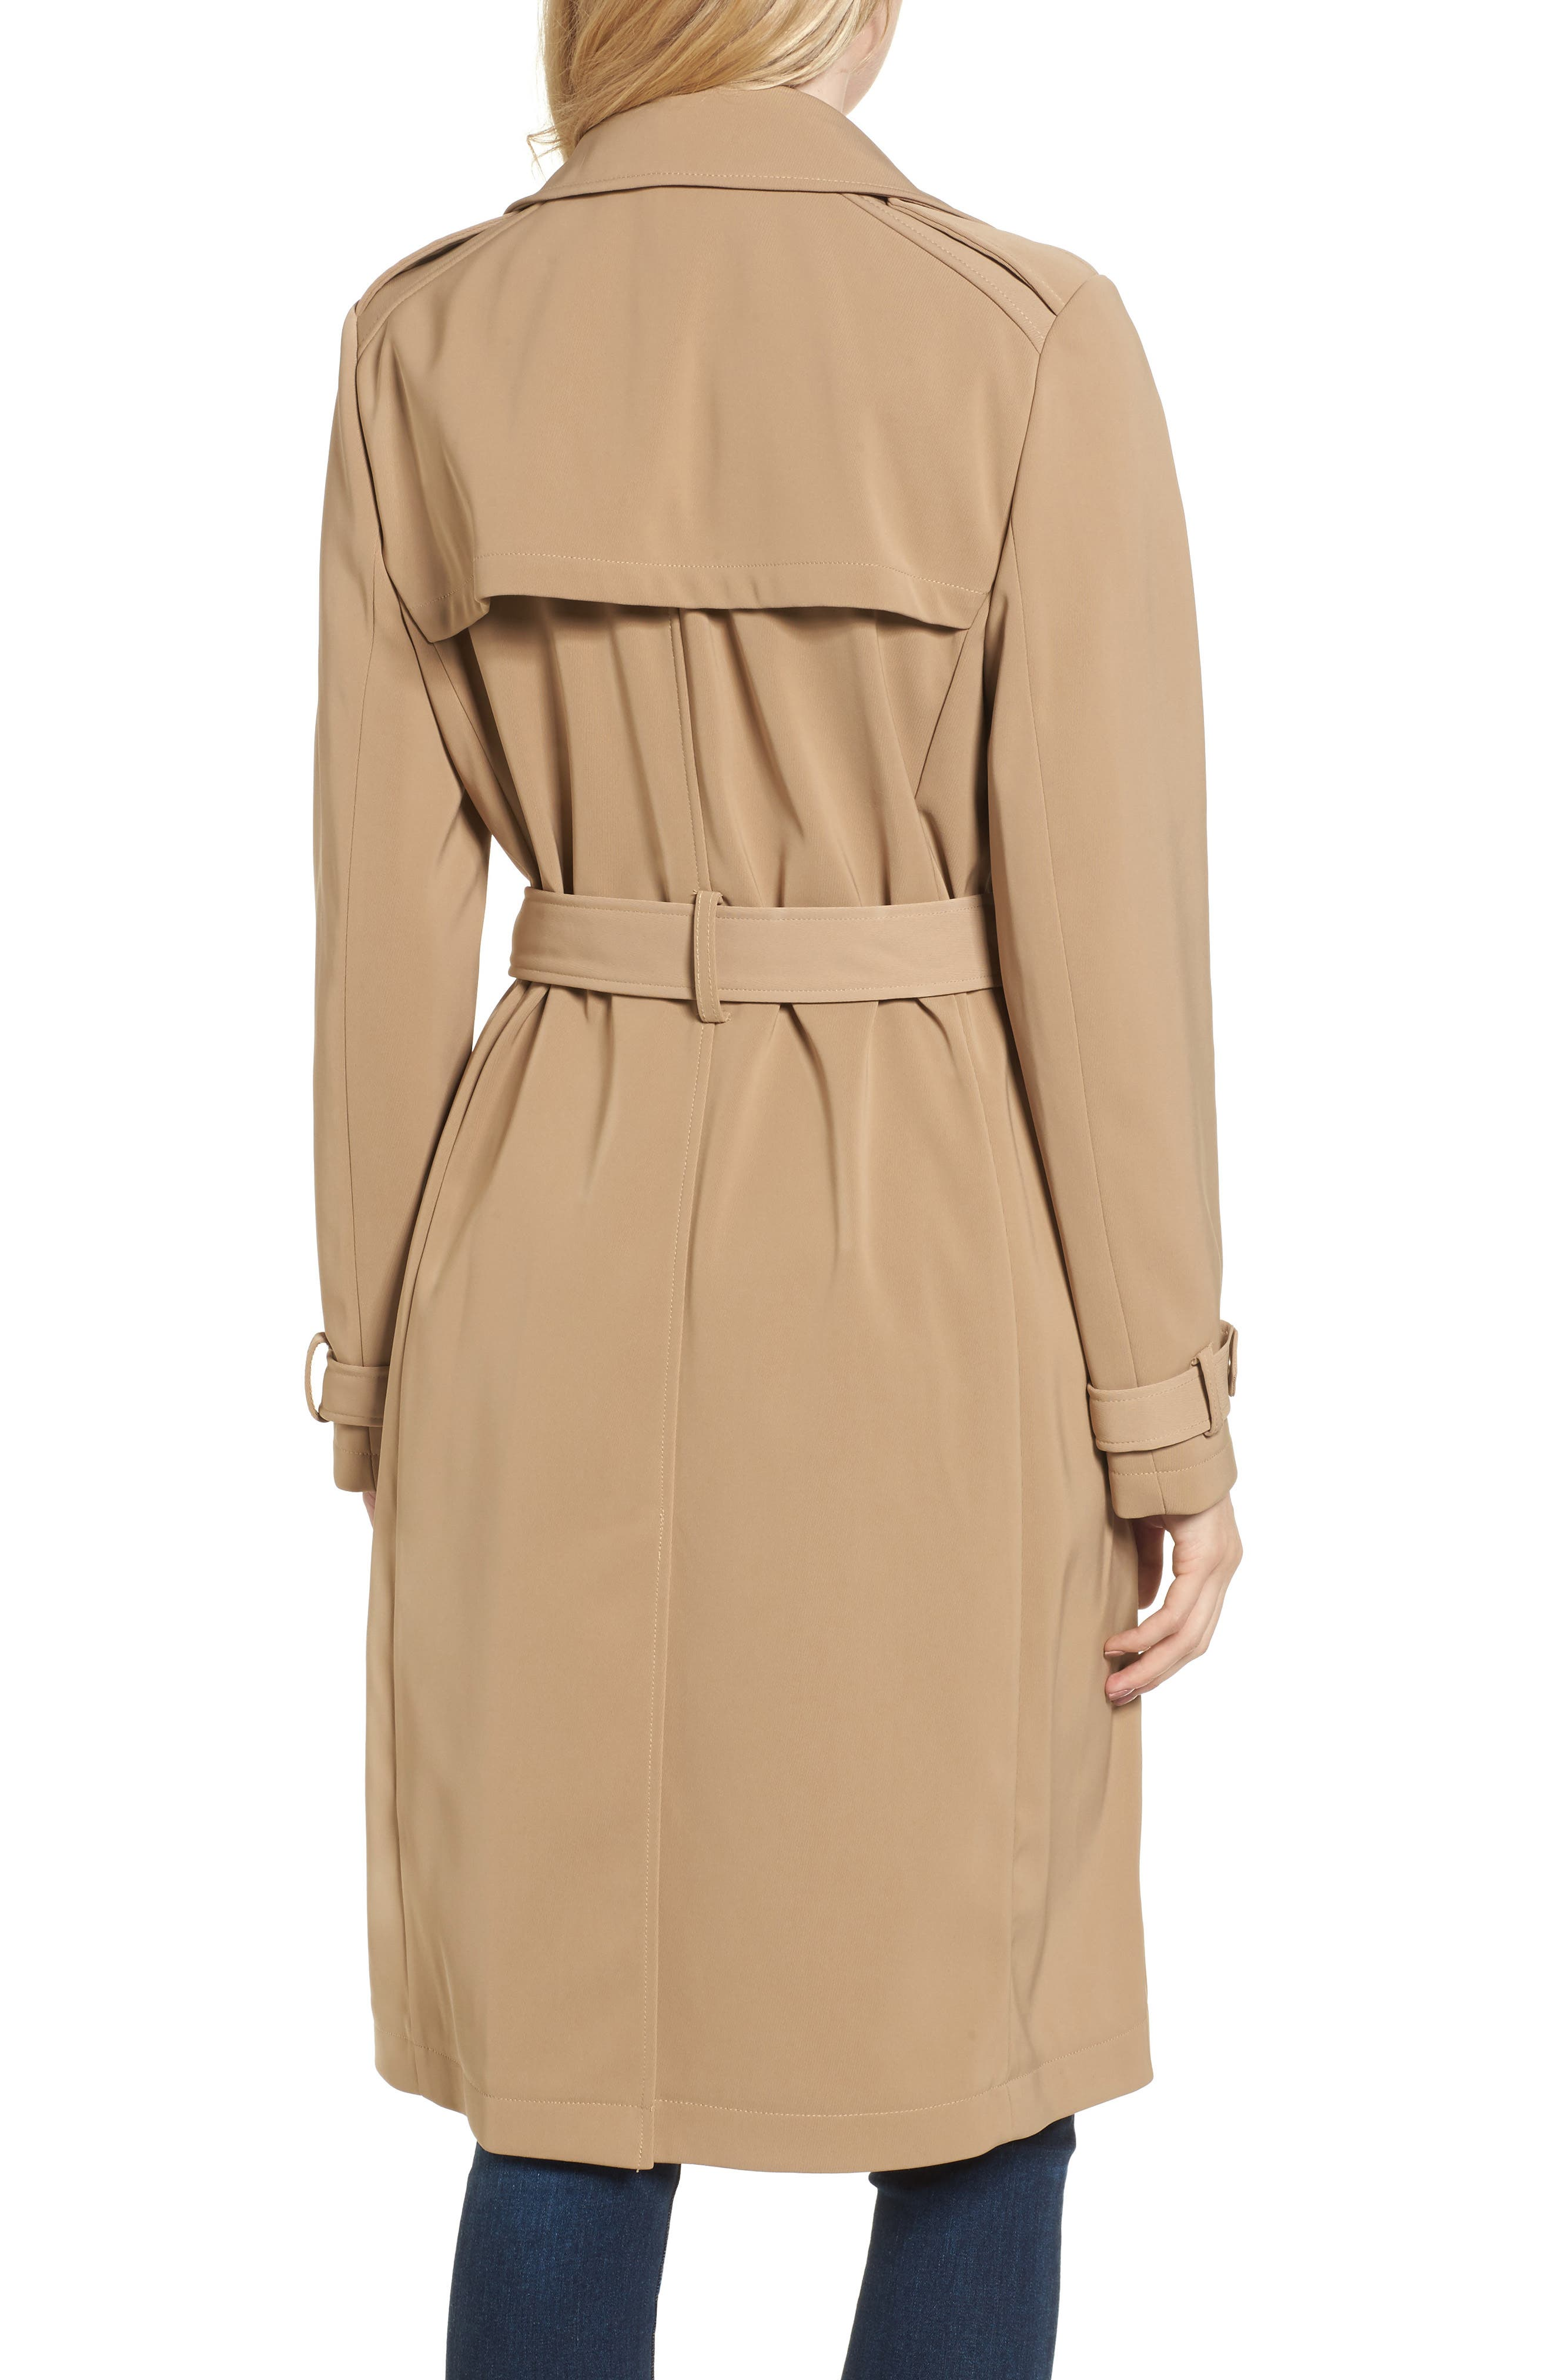 DKNY French Twill Water Resistant Trench Coat,                             Alternate thumbnail 4, color,